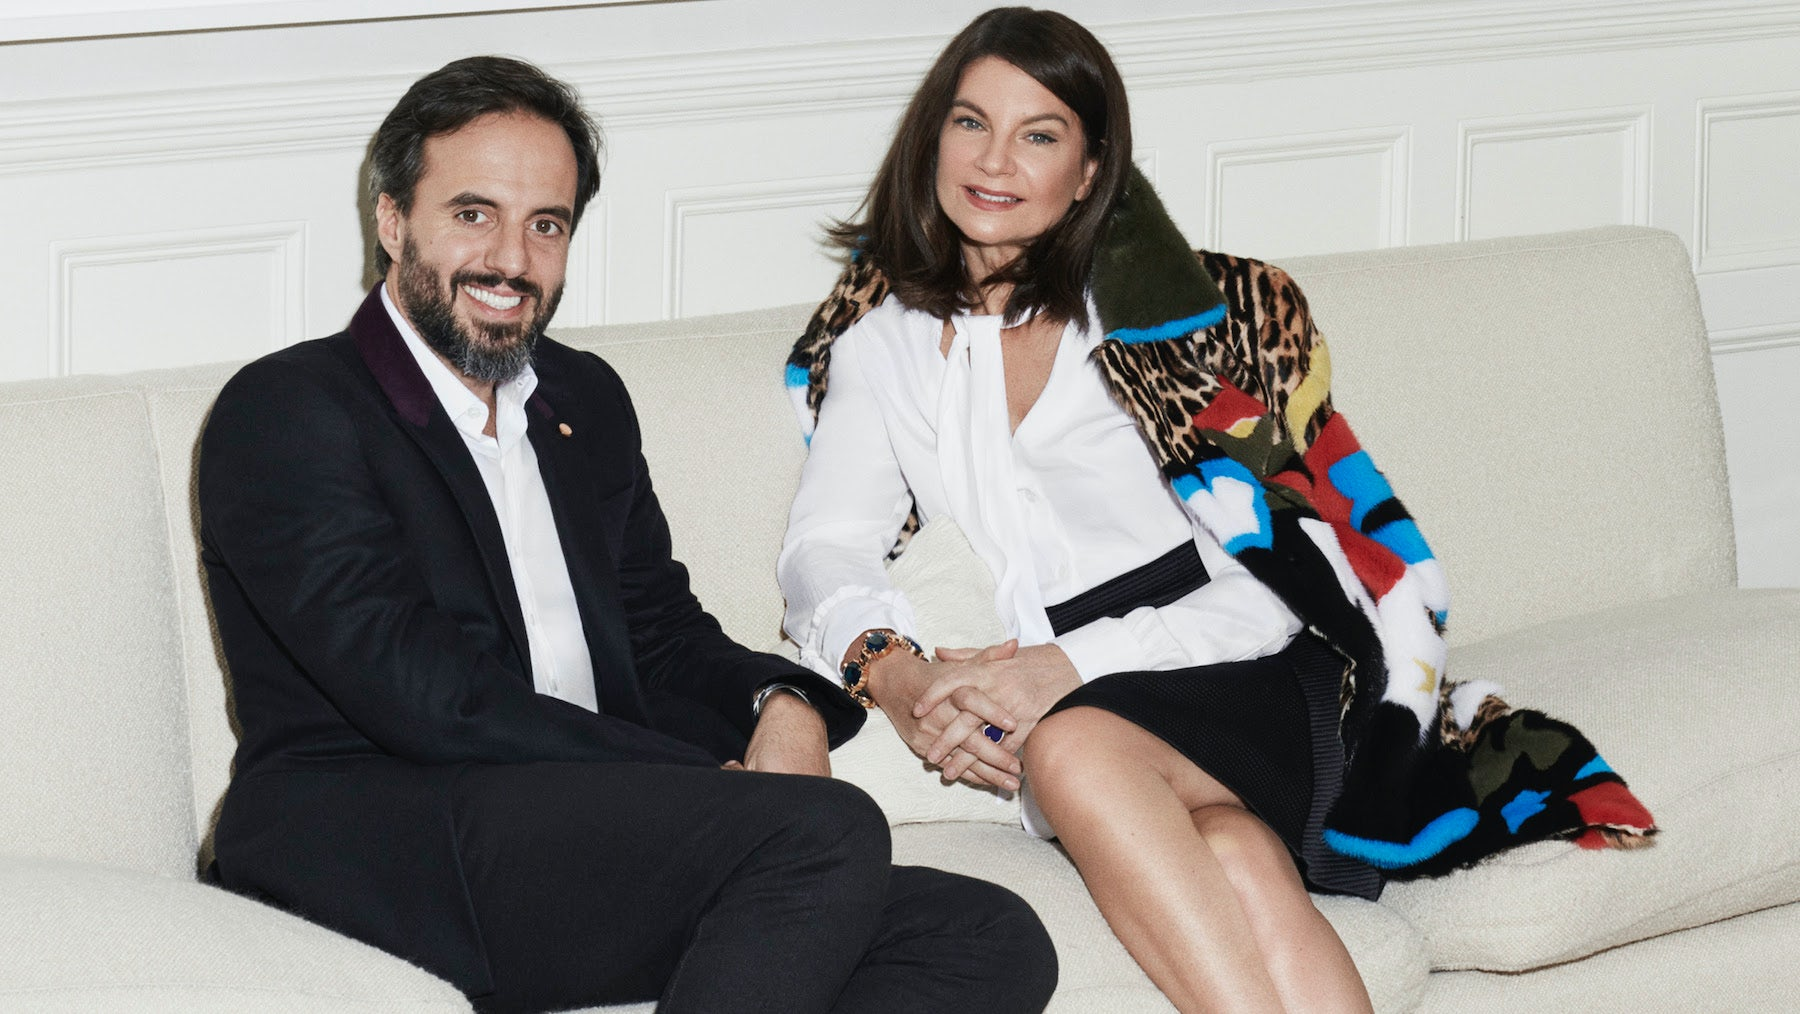 Natalie Massenet with José Neves, founder and CEO of Farfetch | Source: Farfetch